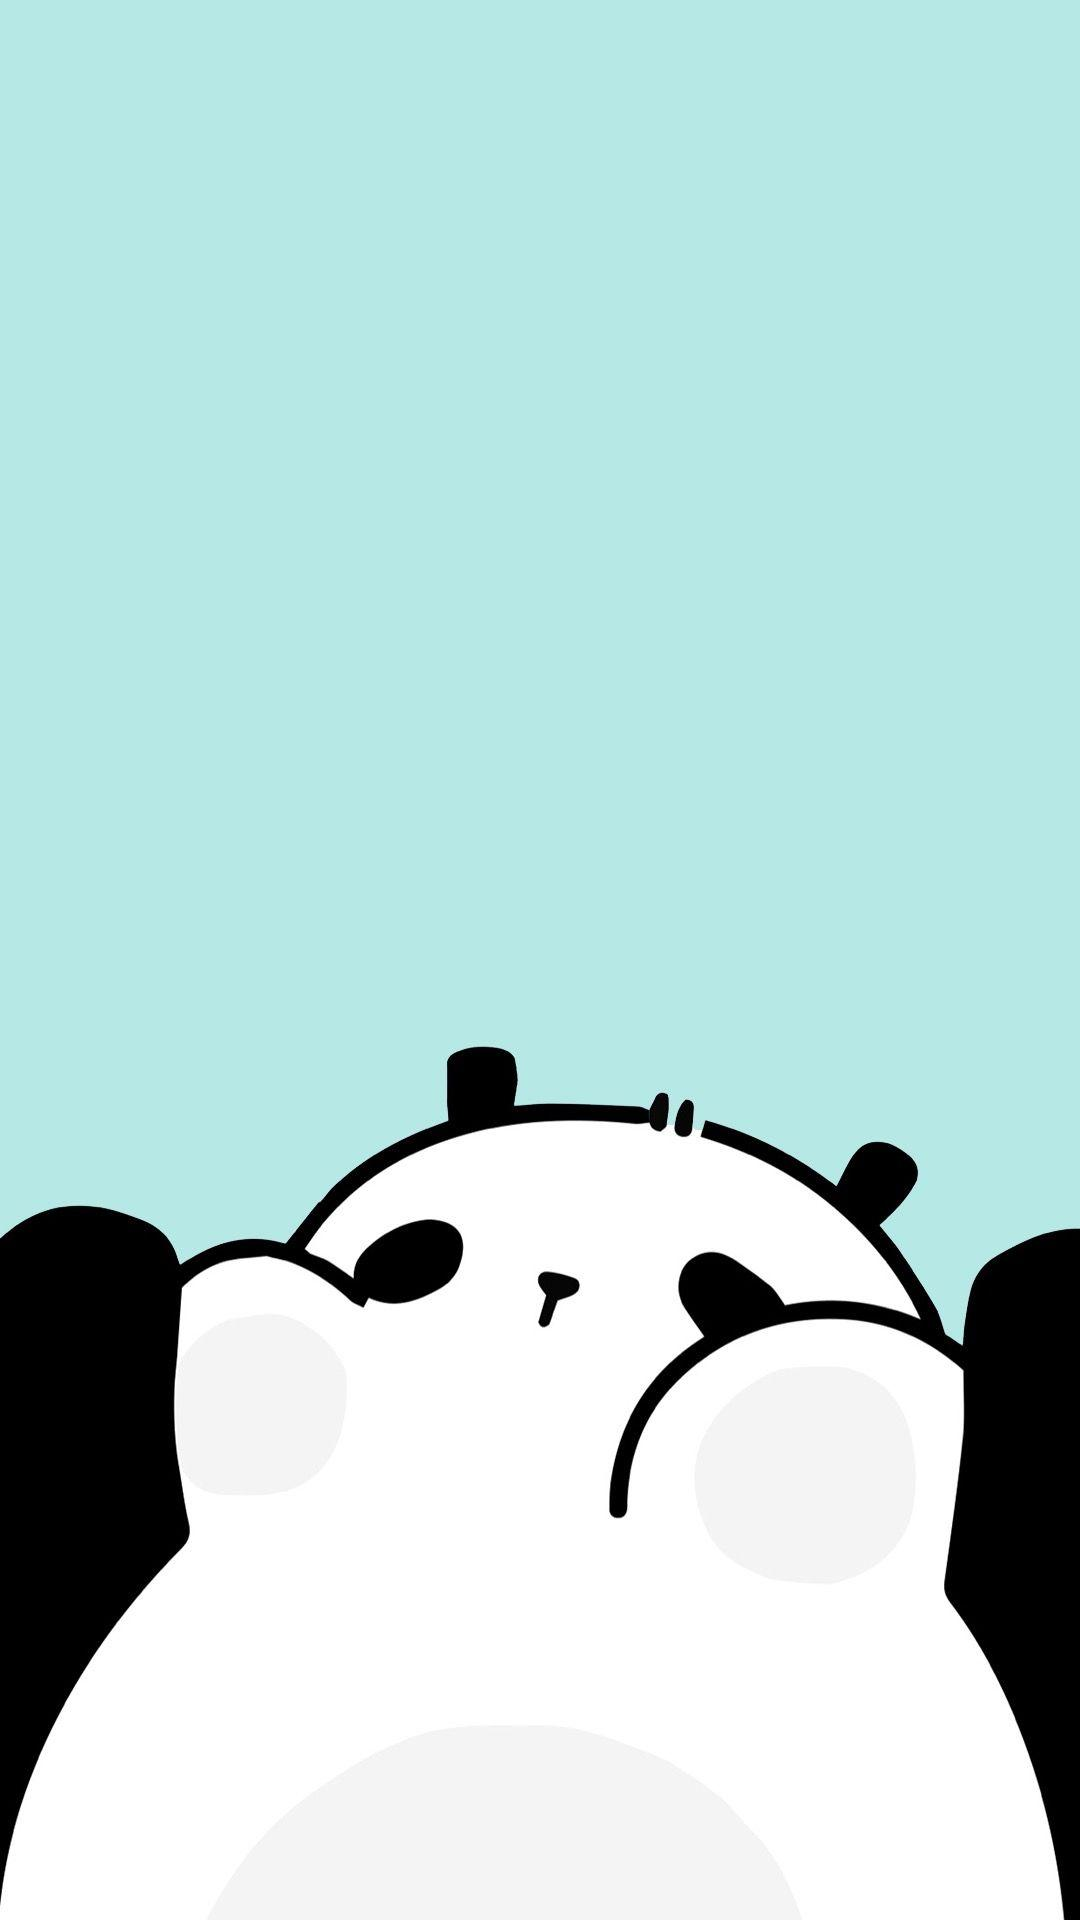 Kawaii 1080x1920 Wallpapers Wallpaper Cave